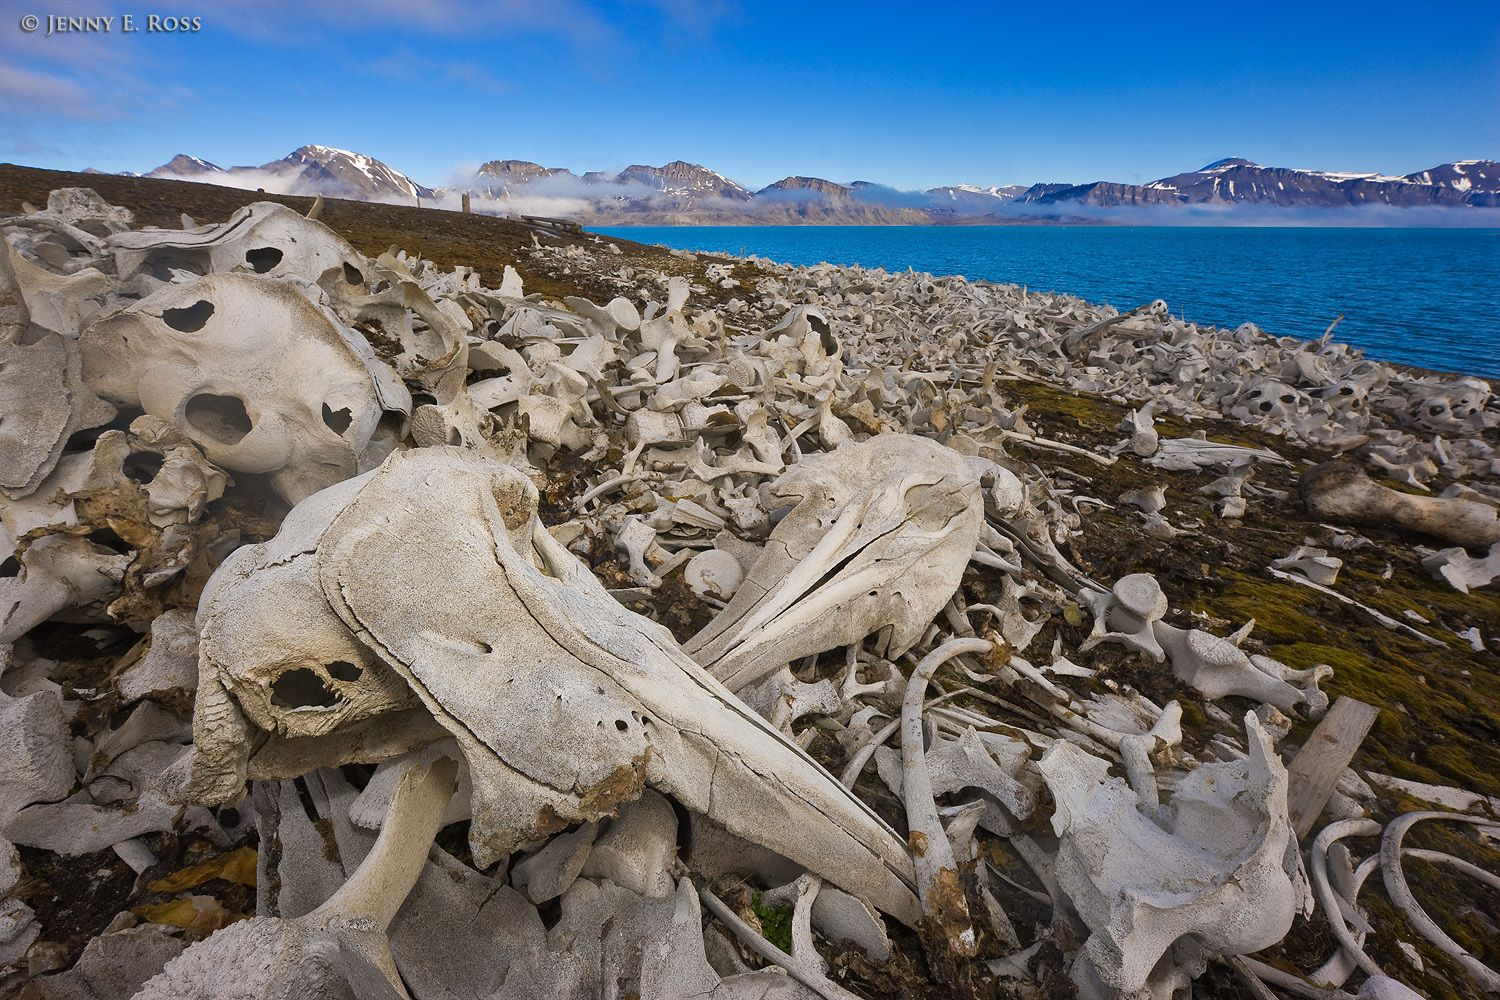 Piles of Beluga Whale bones (Delphinapterus leucas) on the beach at Ahlstrandodden in Bellsund, on the island of Spitsbergen in the Svalbard Archipelago, Norway.